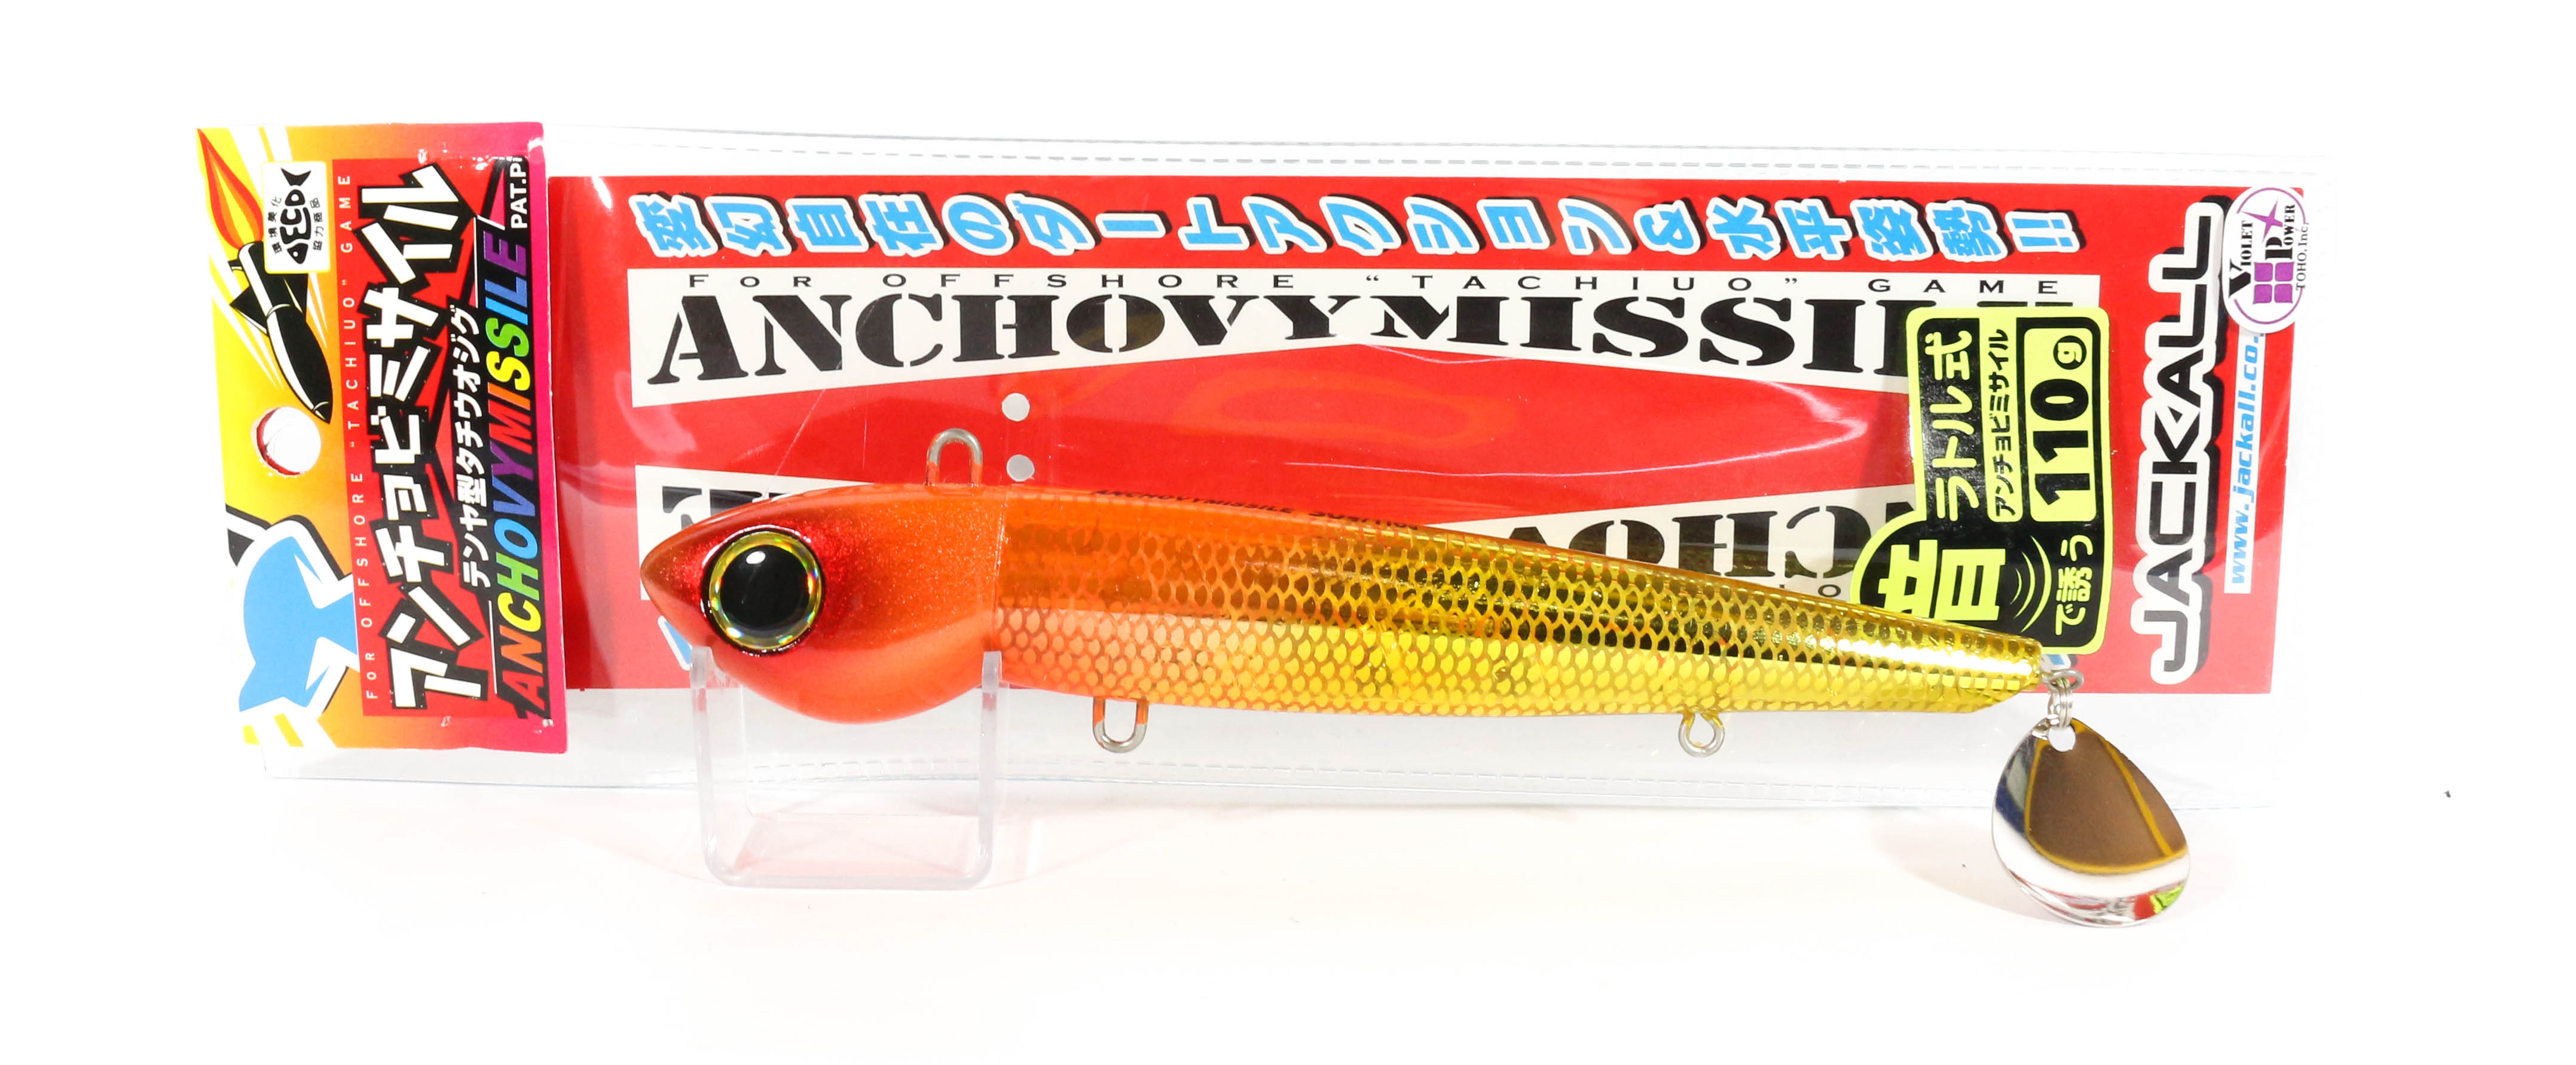 Jackall Anchovy Missile RattleShiki Jig Lure 130 grams Orange Gold (5276)